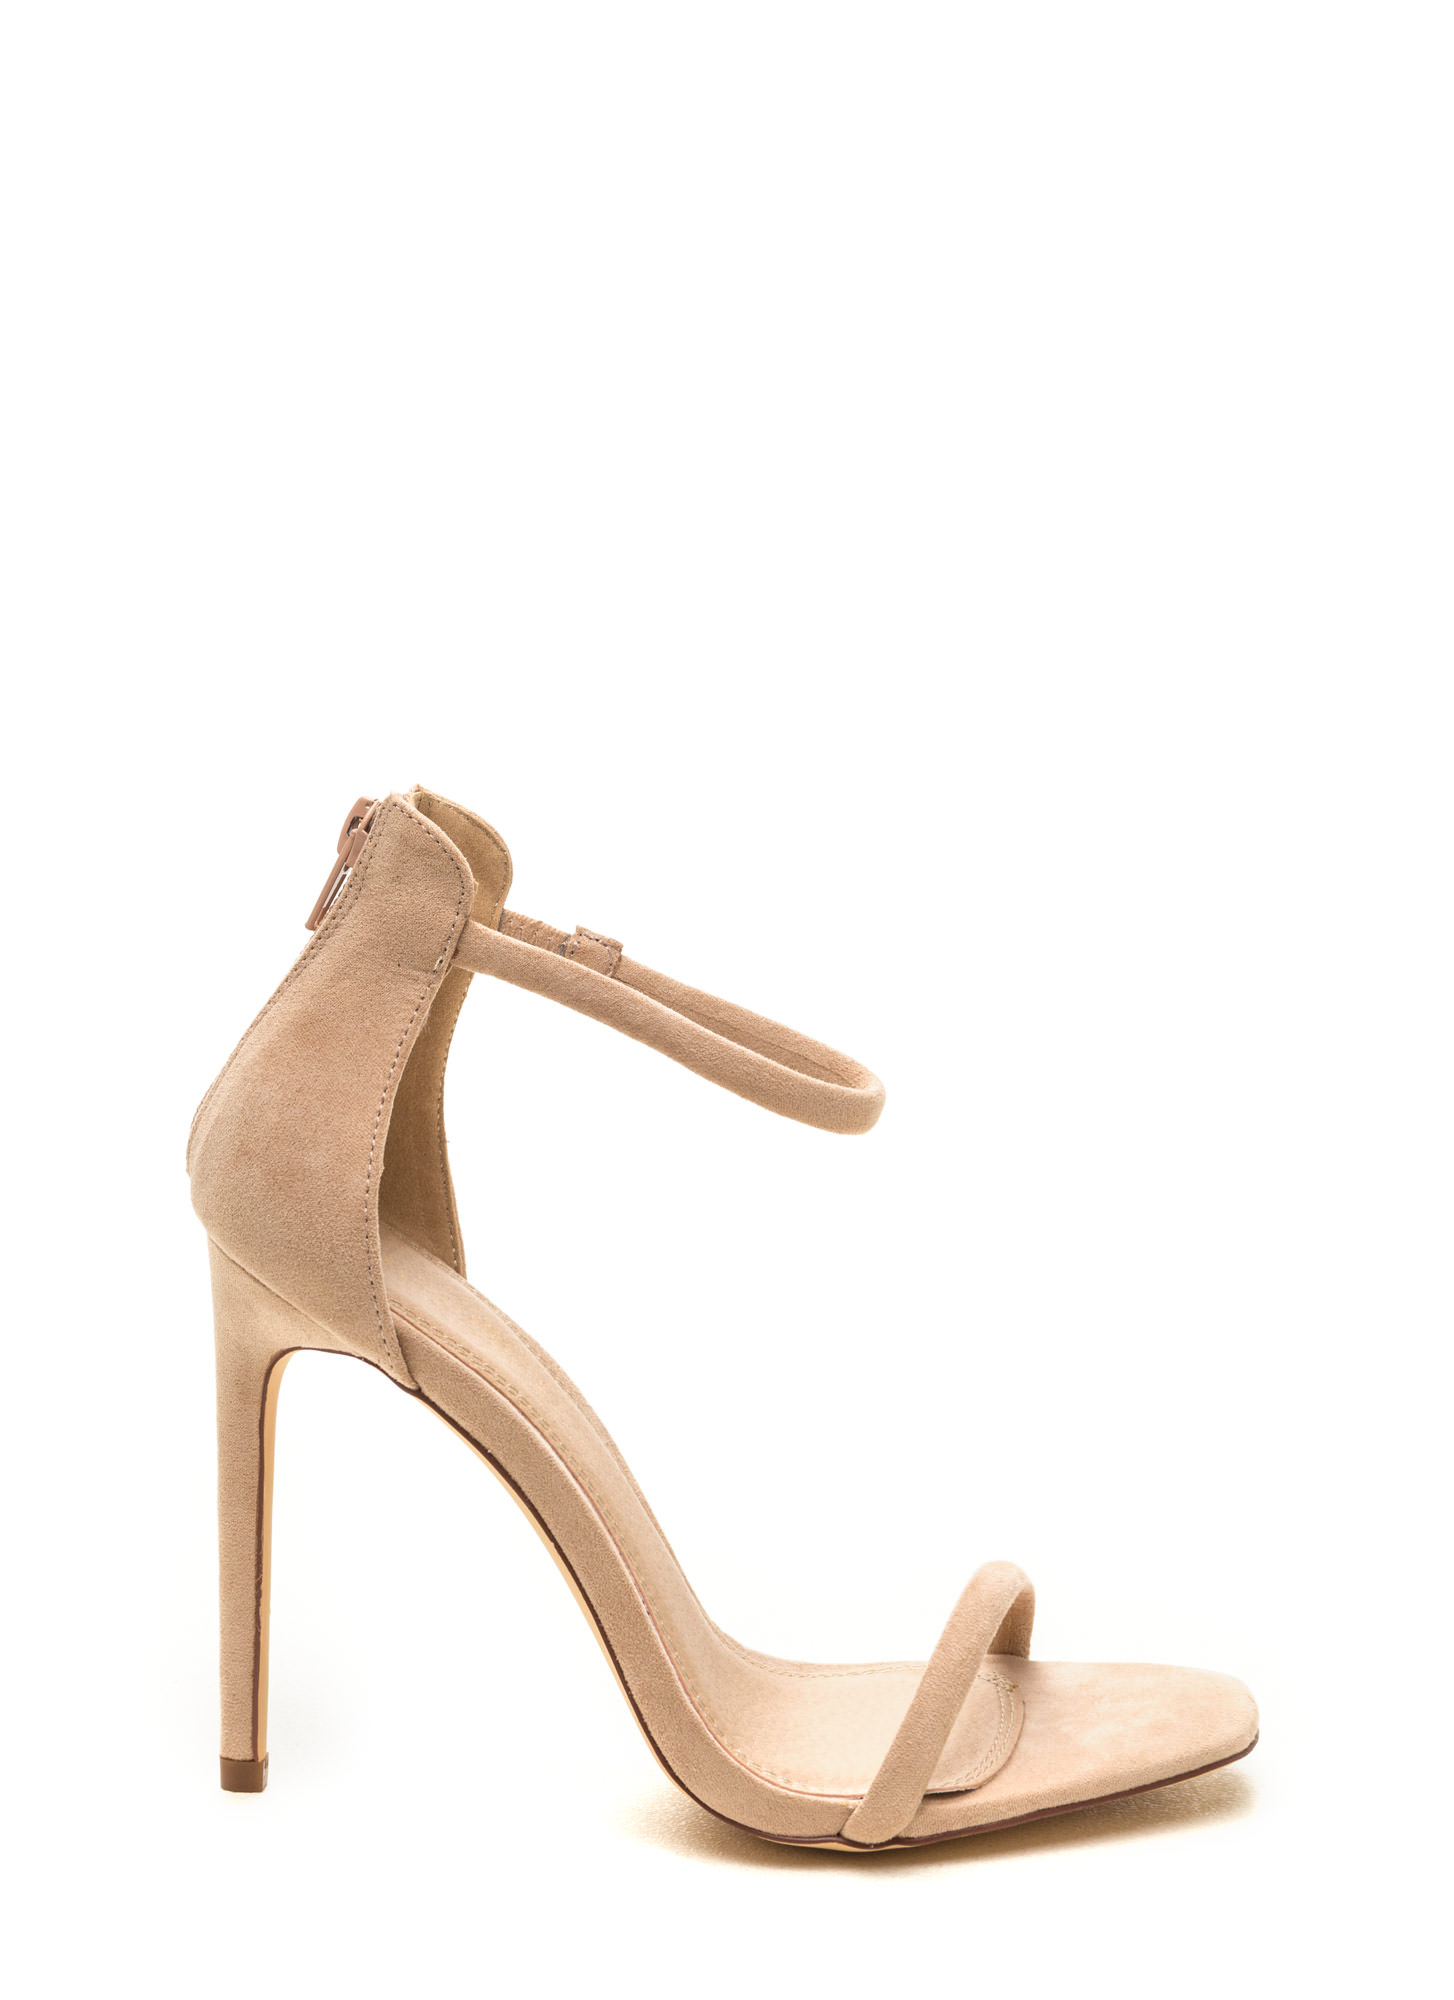 Just One Faux Suede Ankle Strap Heels NUDE